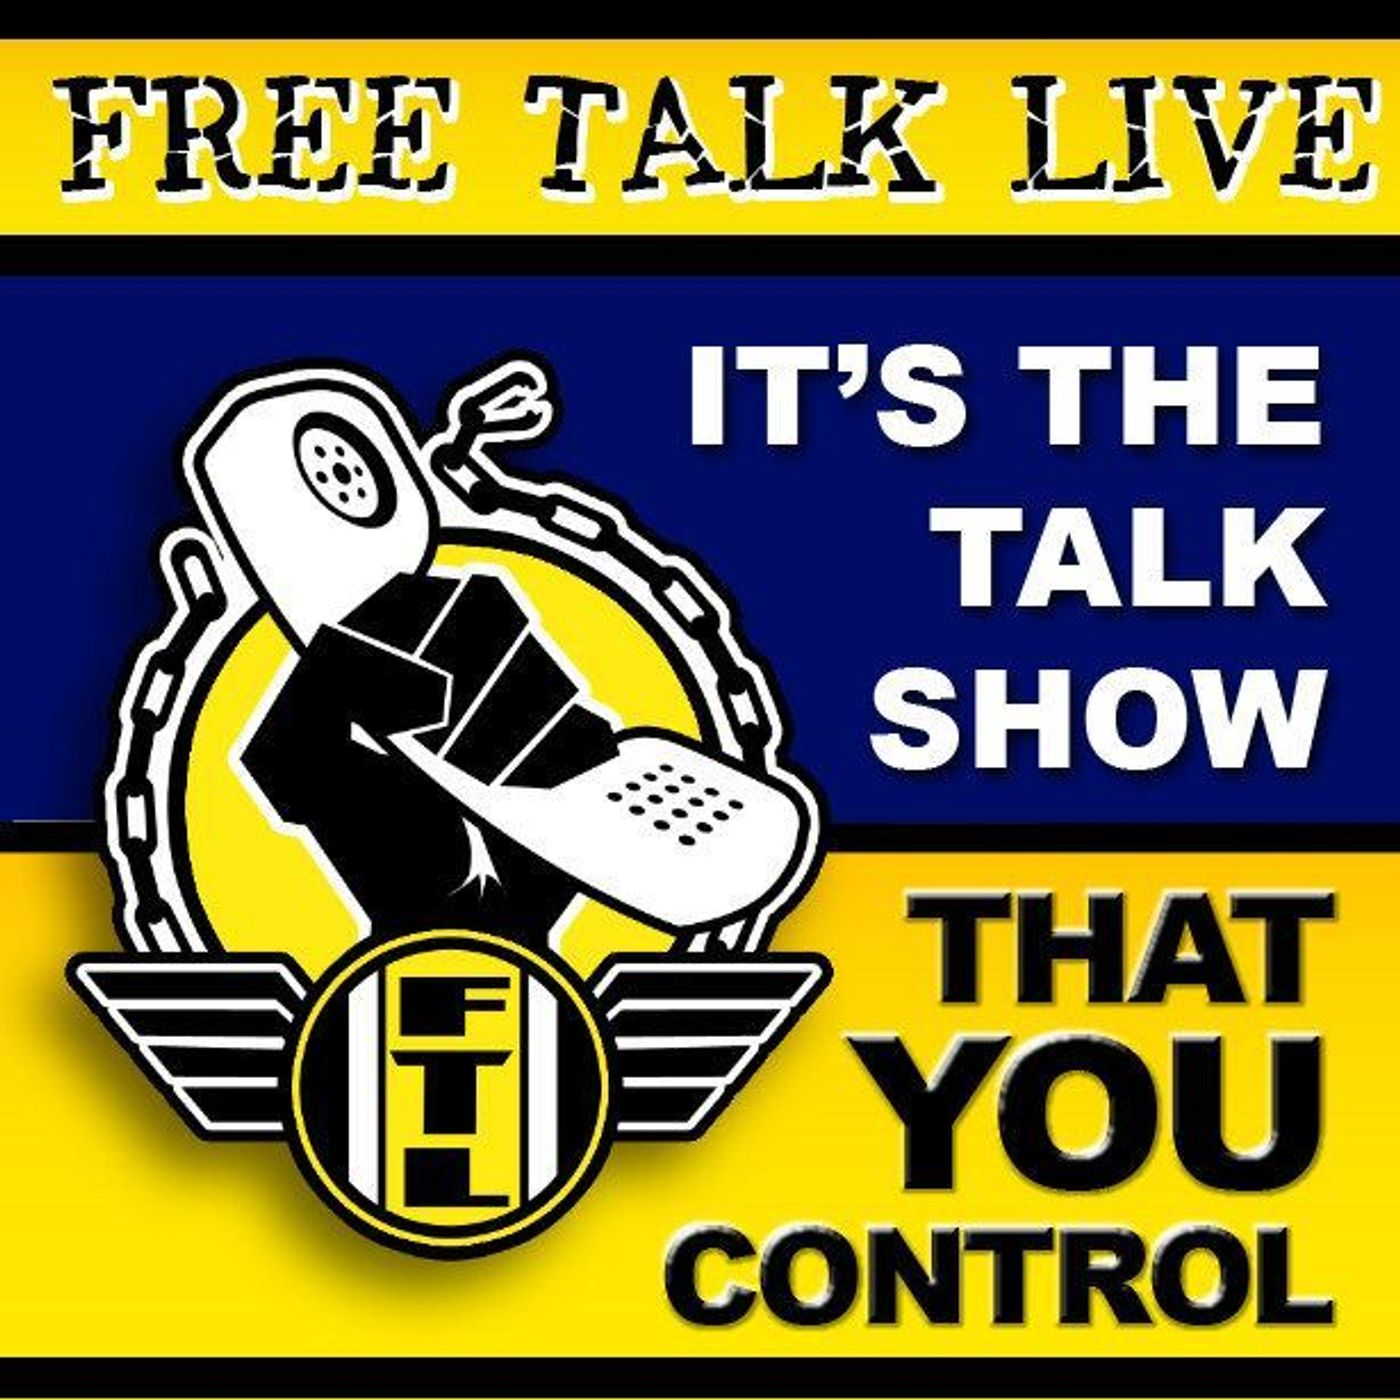 Heartland Newsfeed Radio Network: Free Talk Live (August 22, 2019)